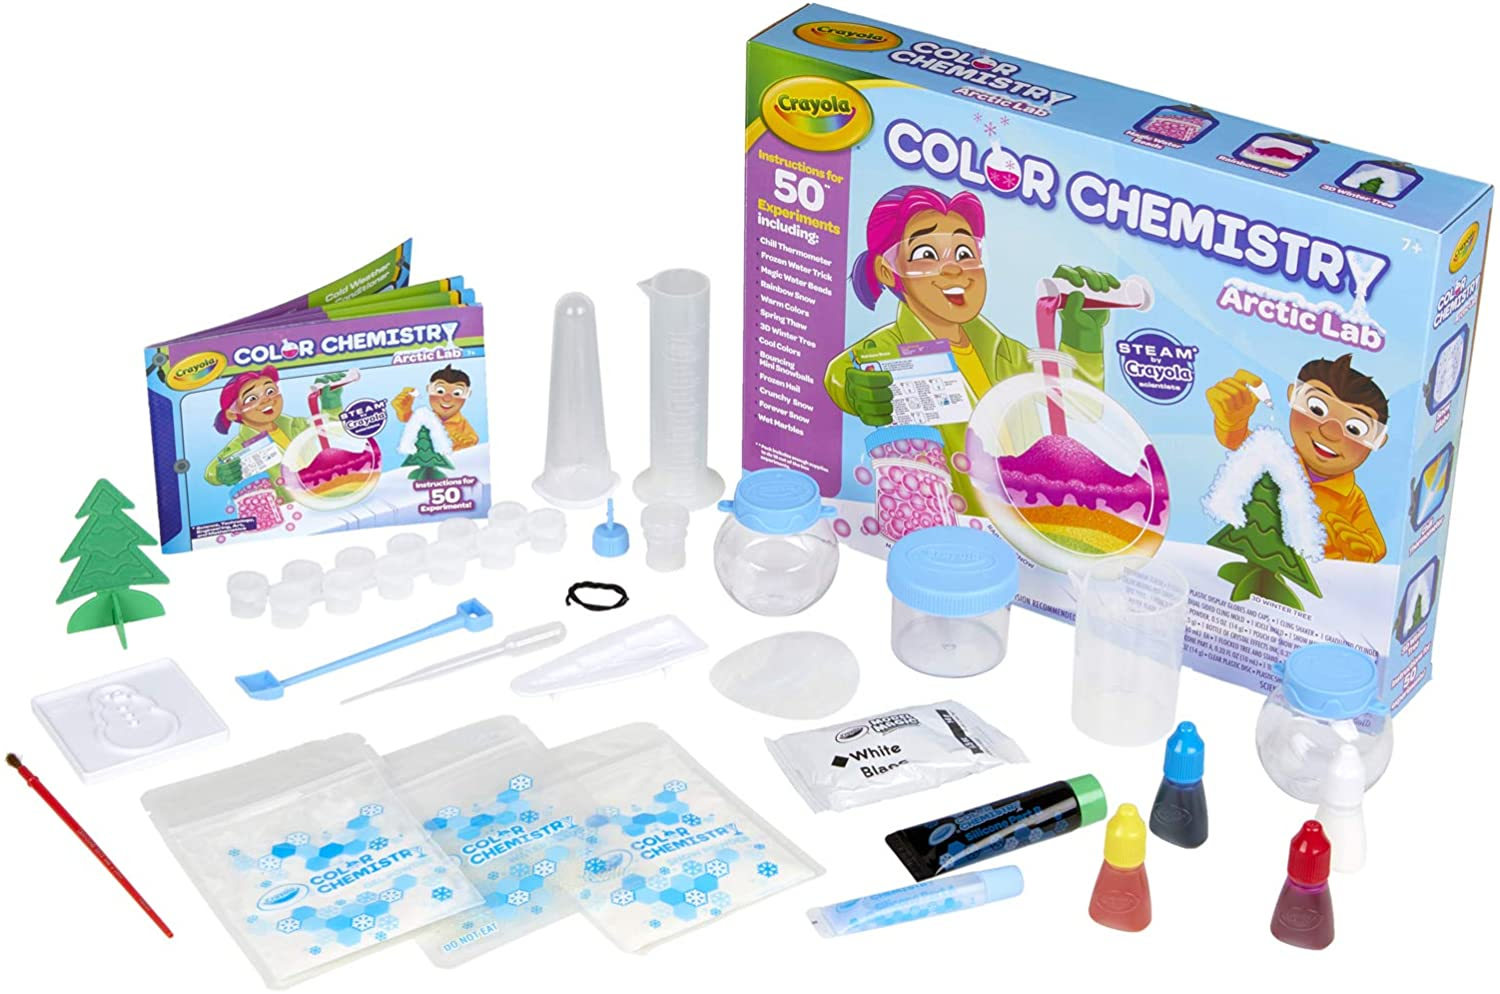 Crayola Arctic Color Chemistry Set for Kids, Steam/Stem Activities, Educational Toy, Ages 7, 8, 9, 10, Multicolor